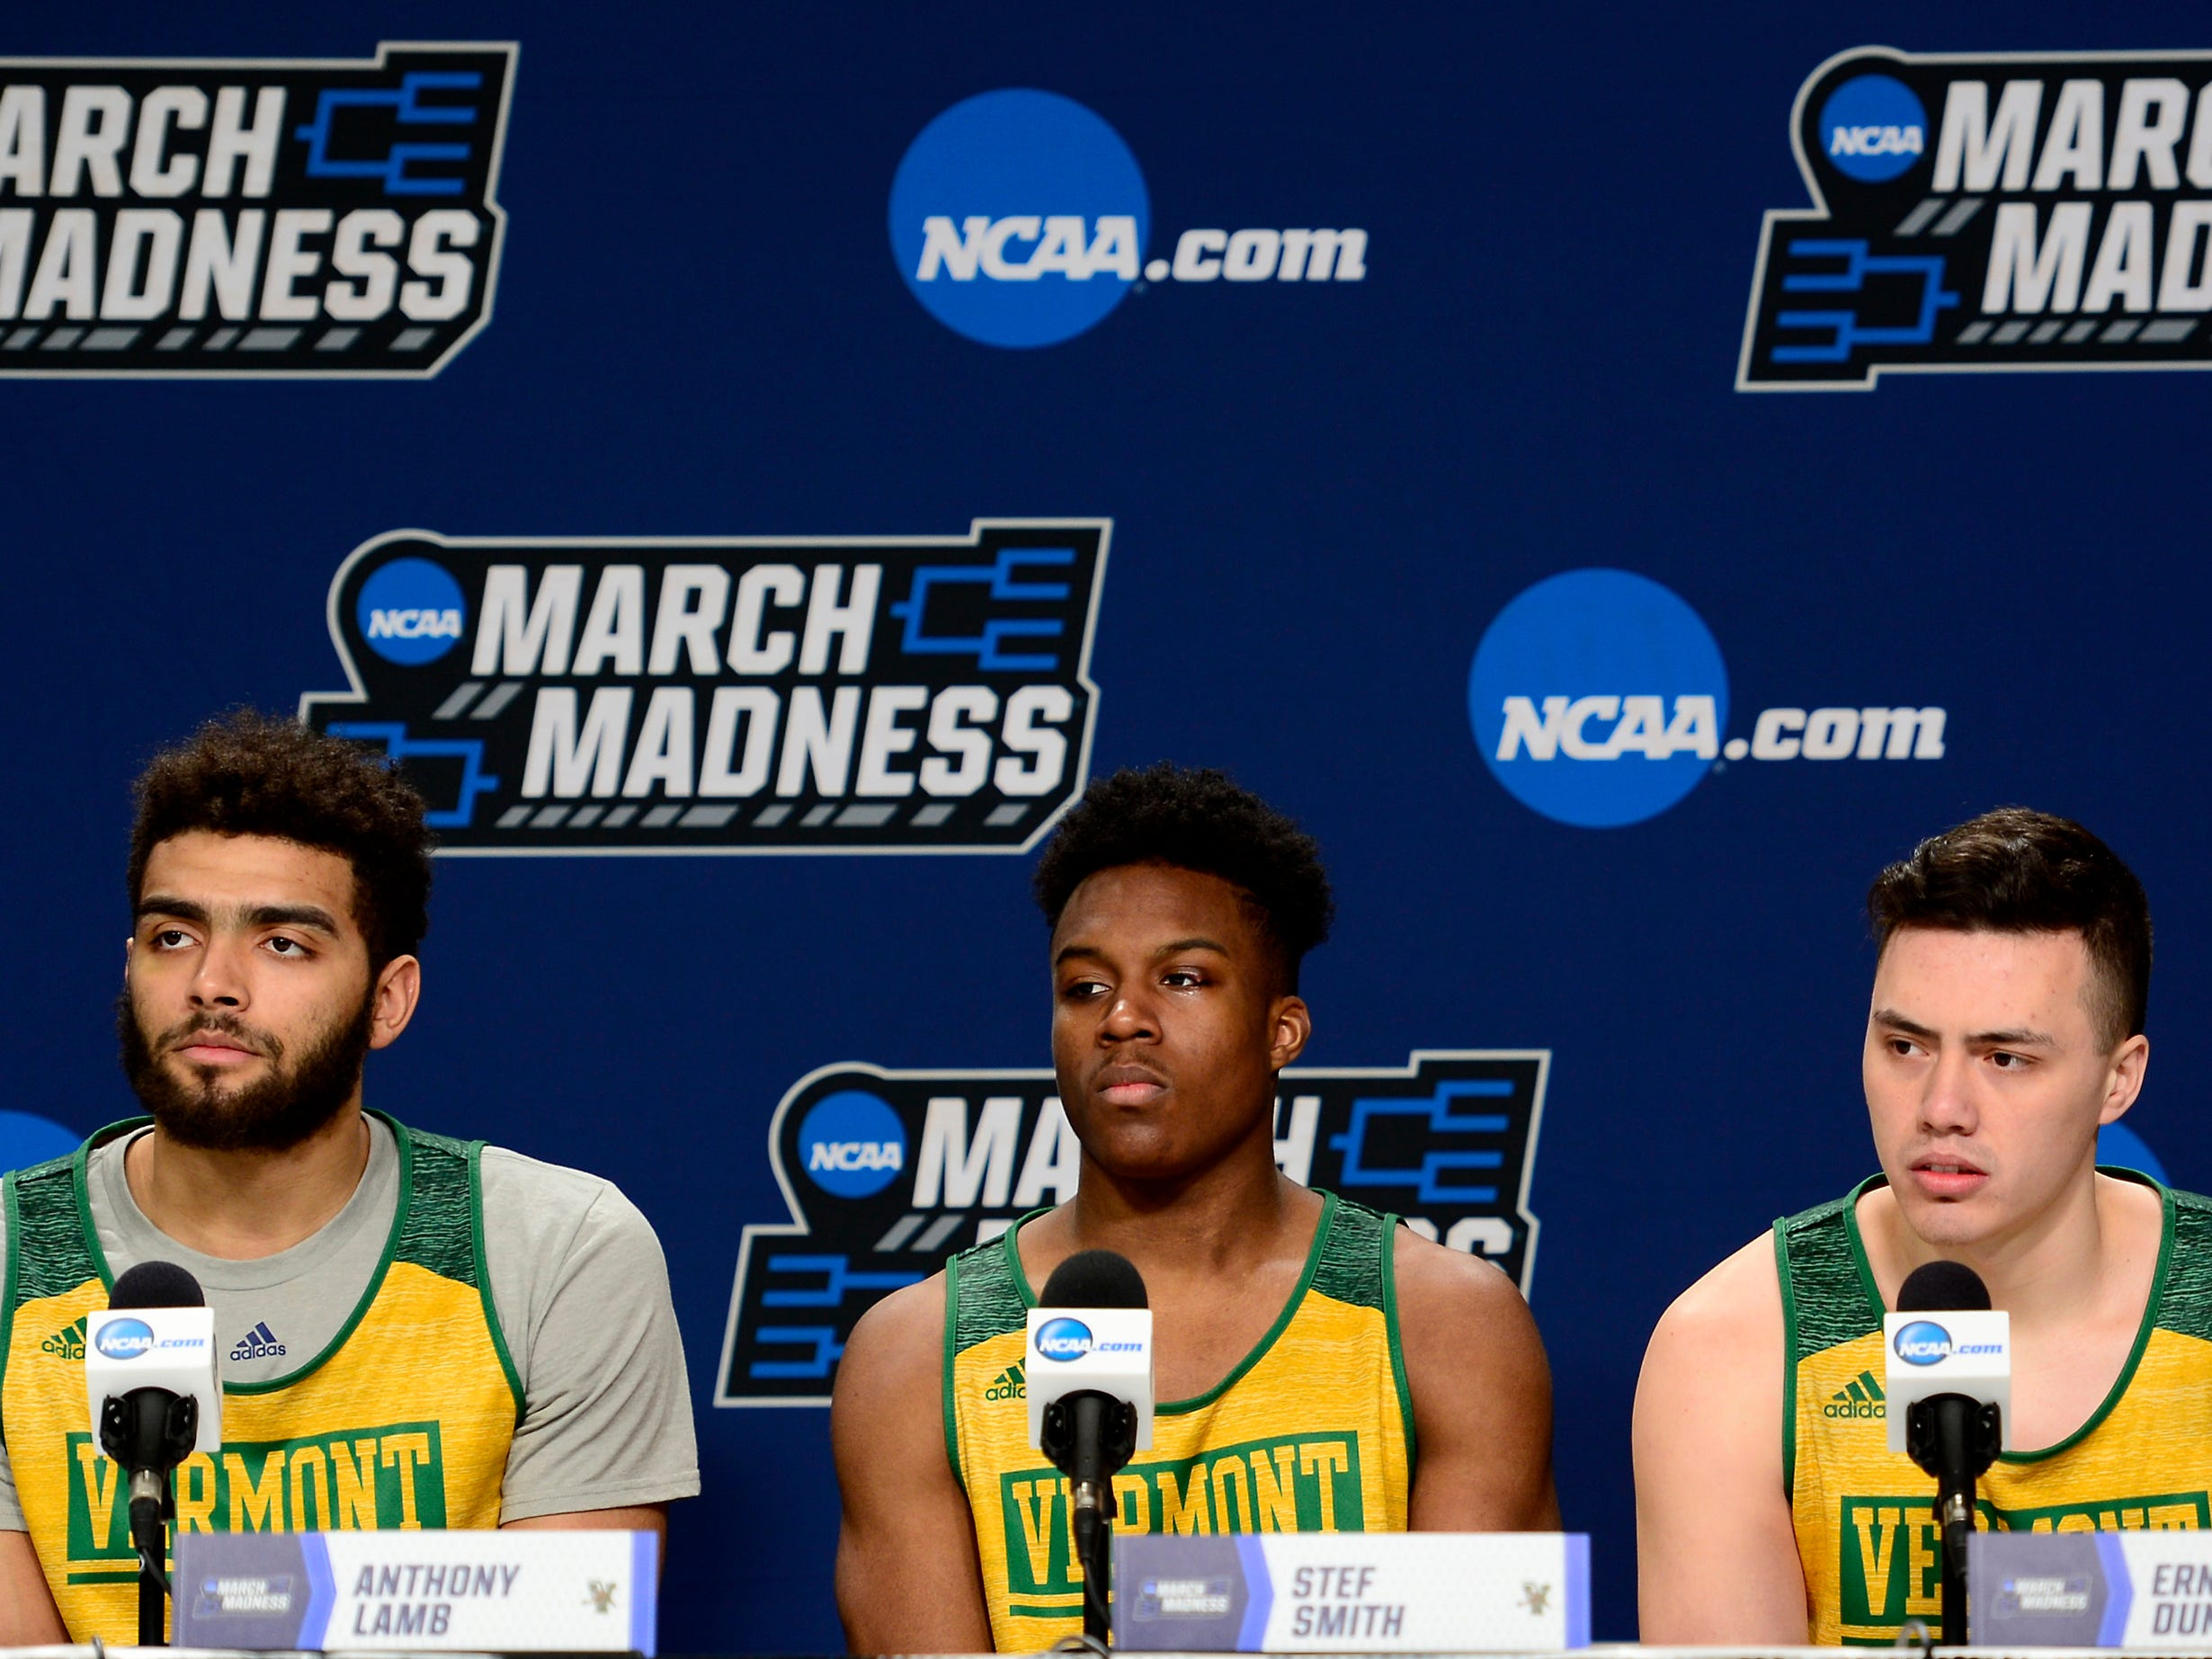 Vermont's Anthony Lamb, left, Stef Smith and Ernie Duncan answer questions from the media before Wednesday's NCAA tournament practice at the XL Center in Hartford, Connecticut.